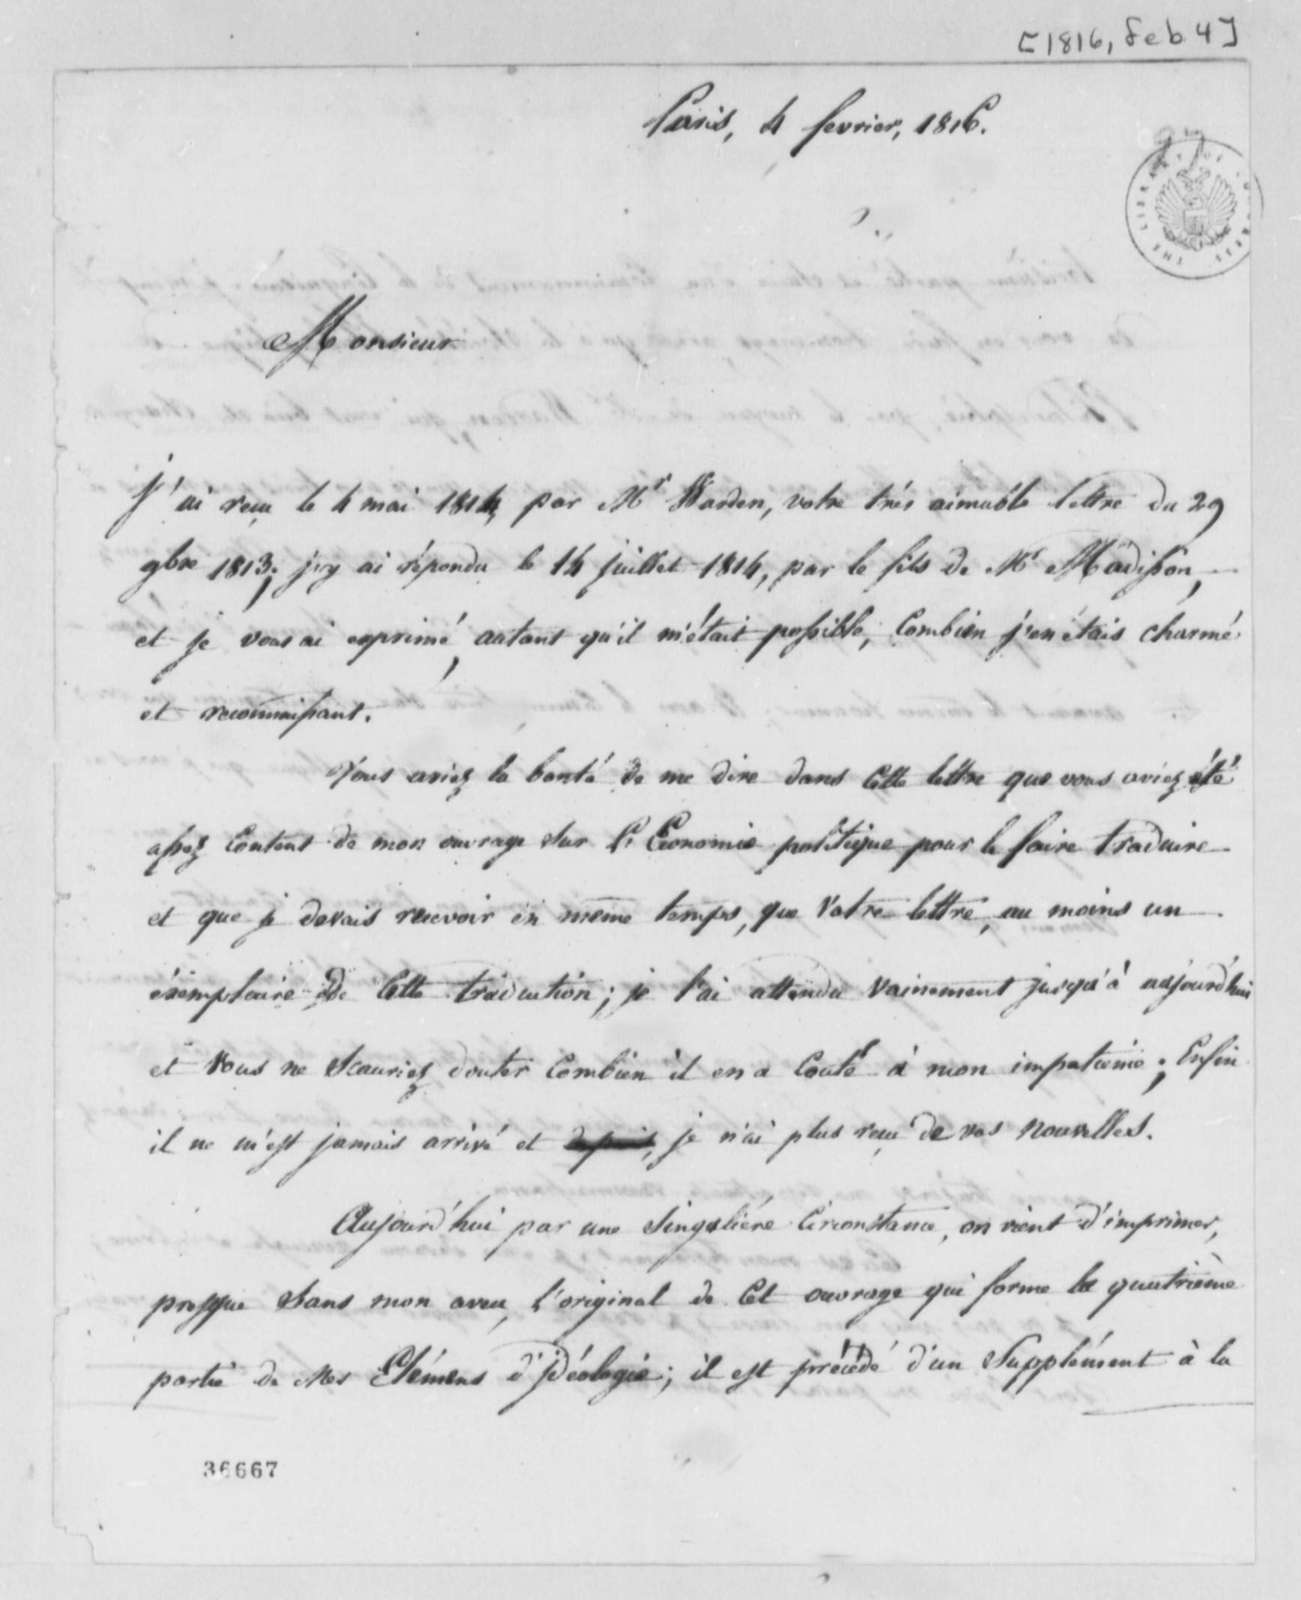 Antoine Louis Claude Destutt de Tracy to Thomas Jefferson, February 4, 1816, in French